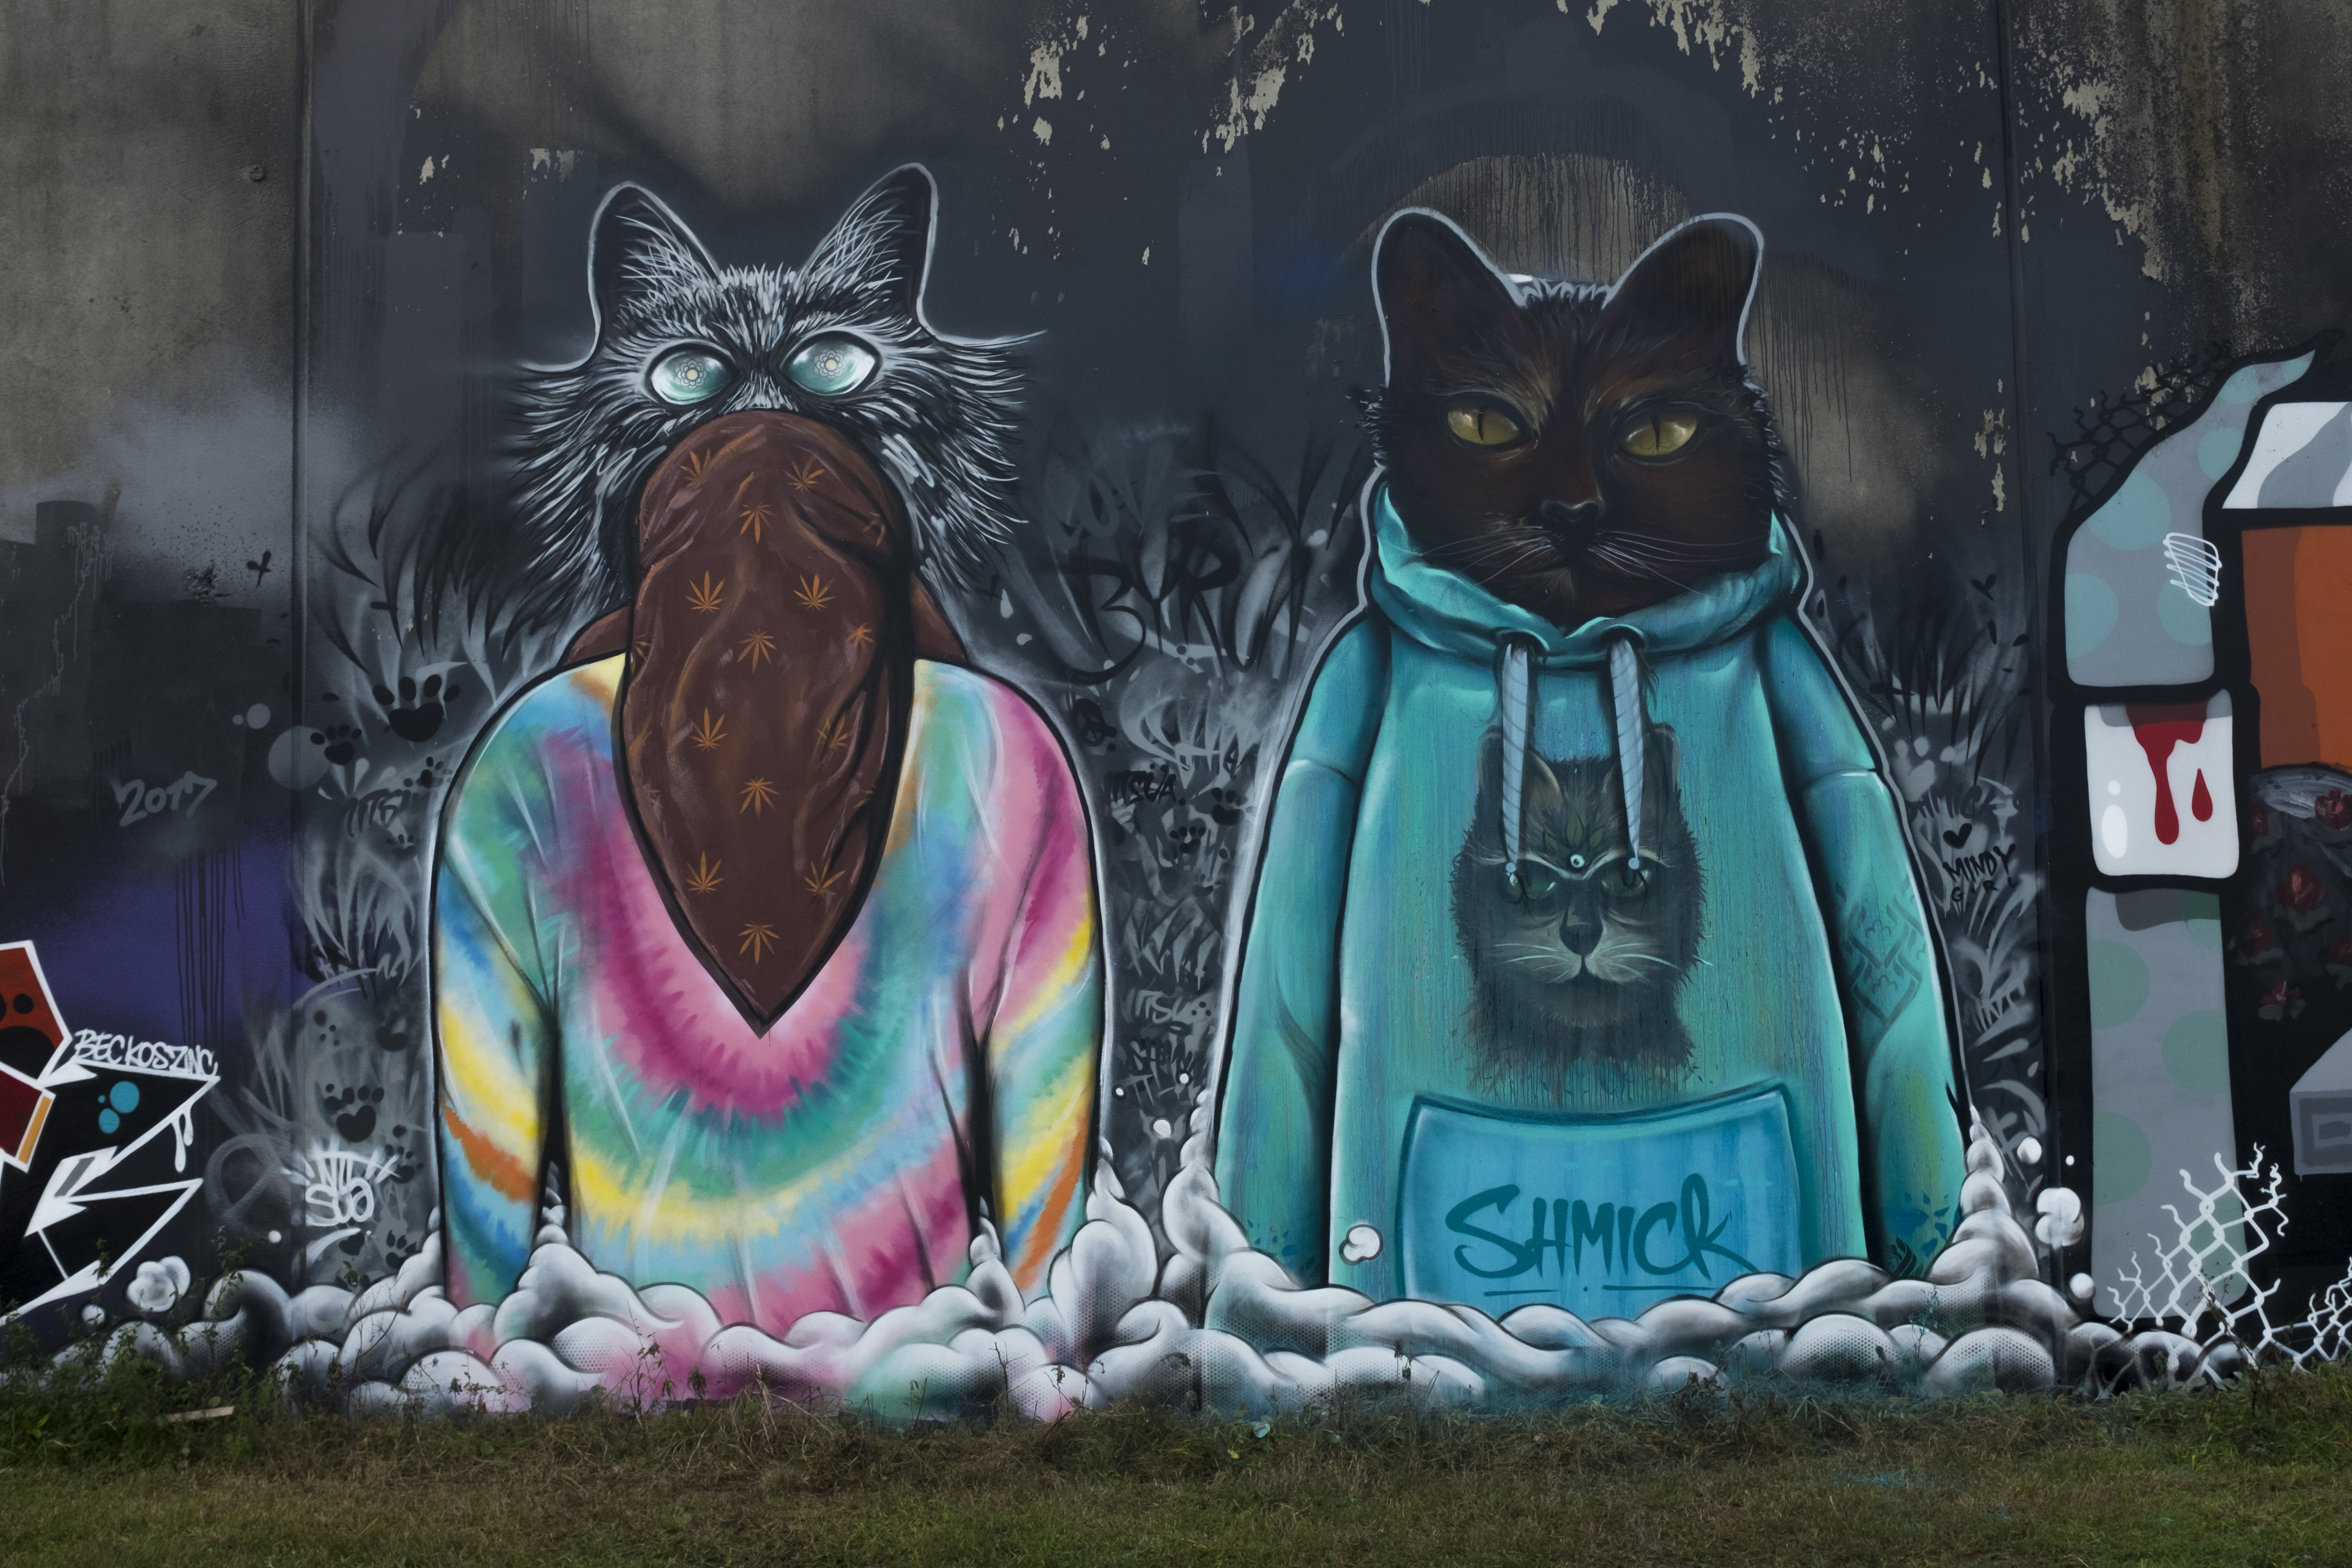 catsua colab with shmick